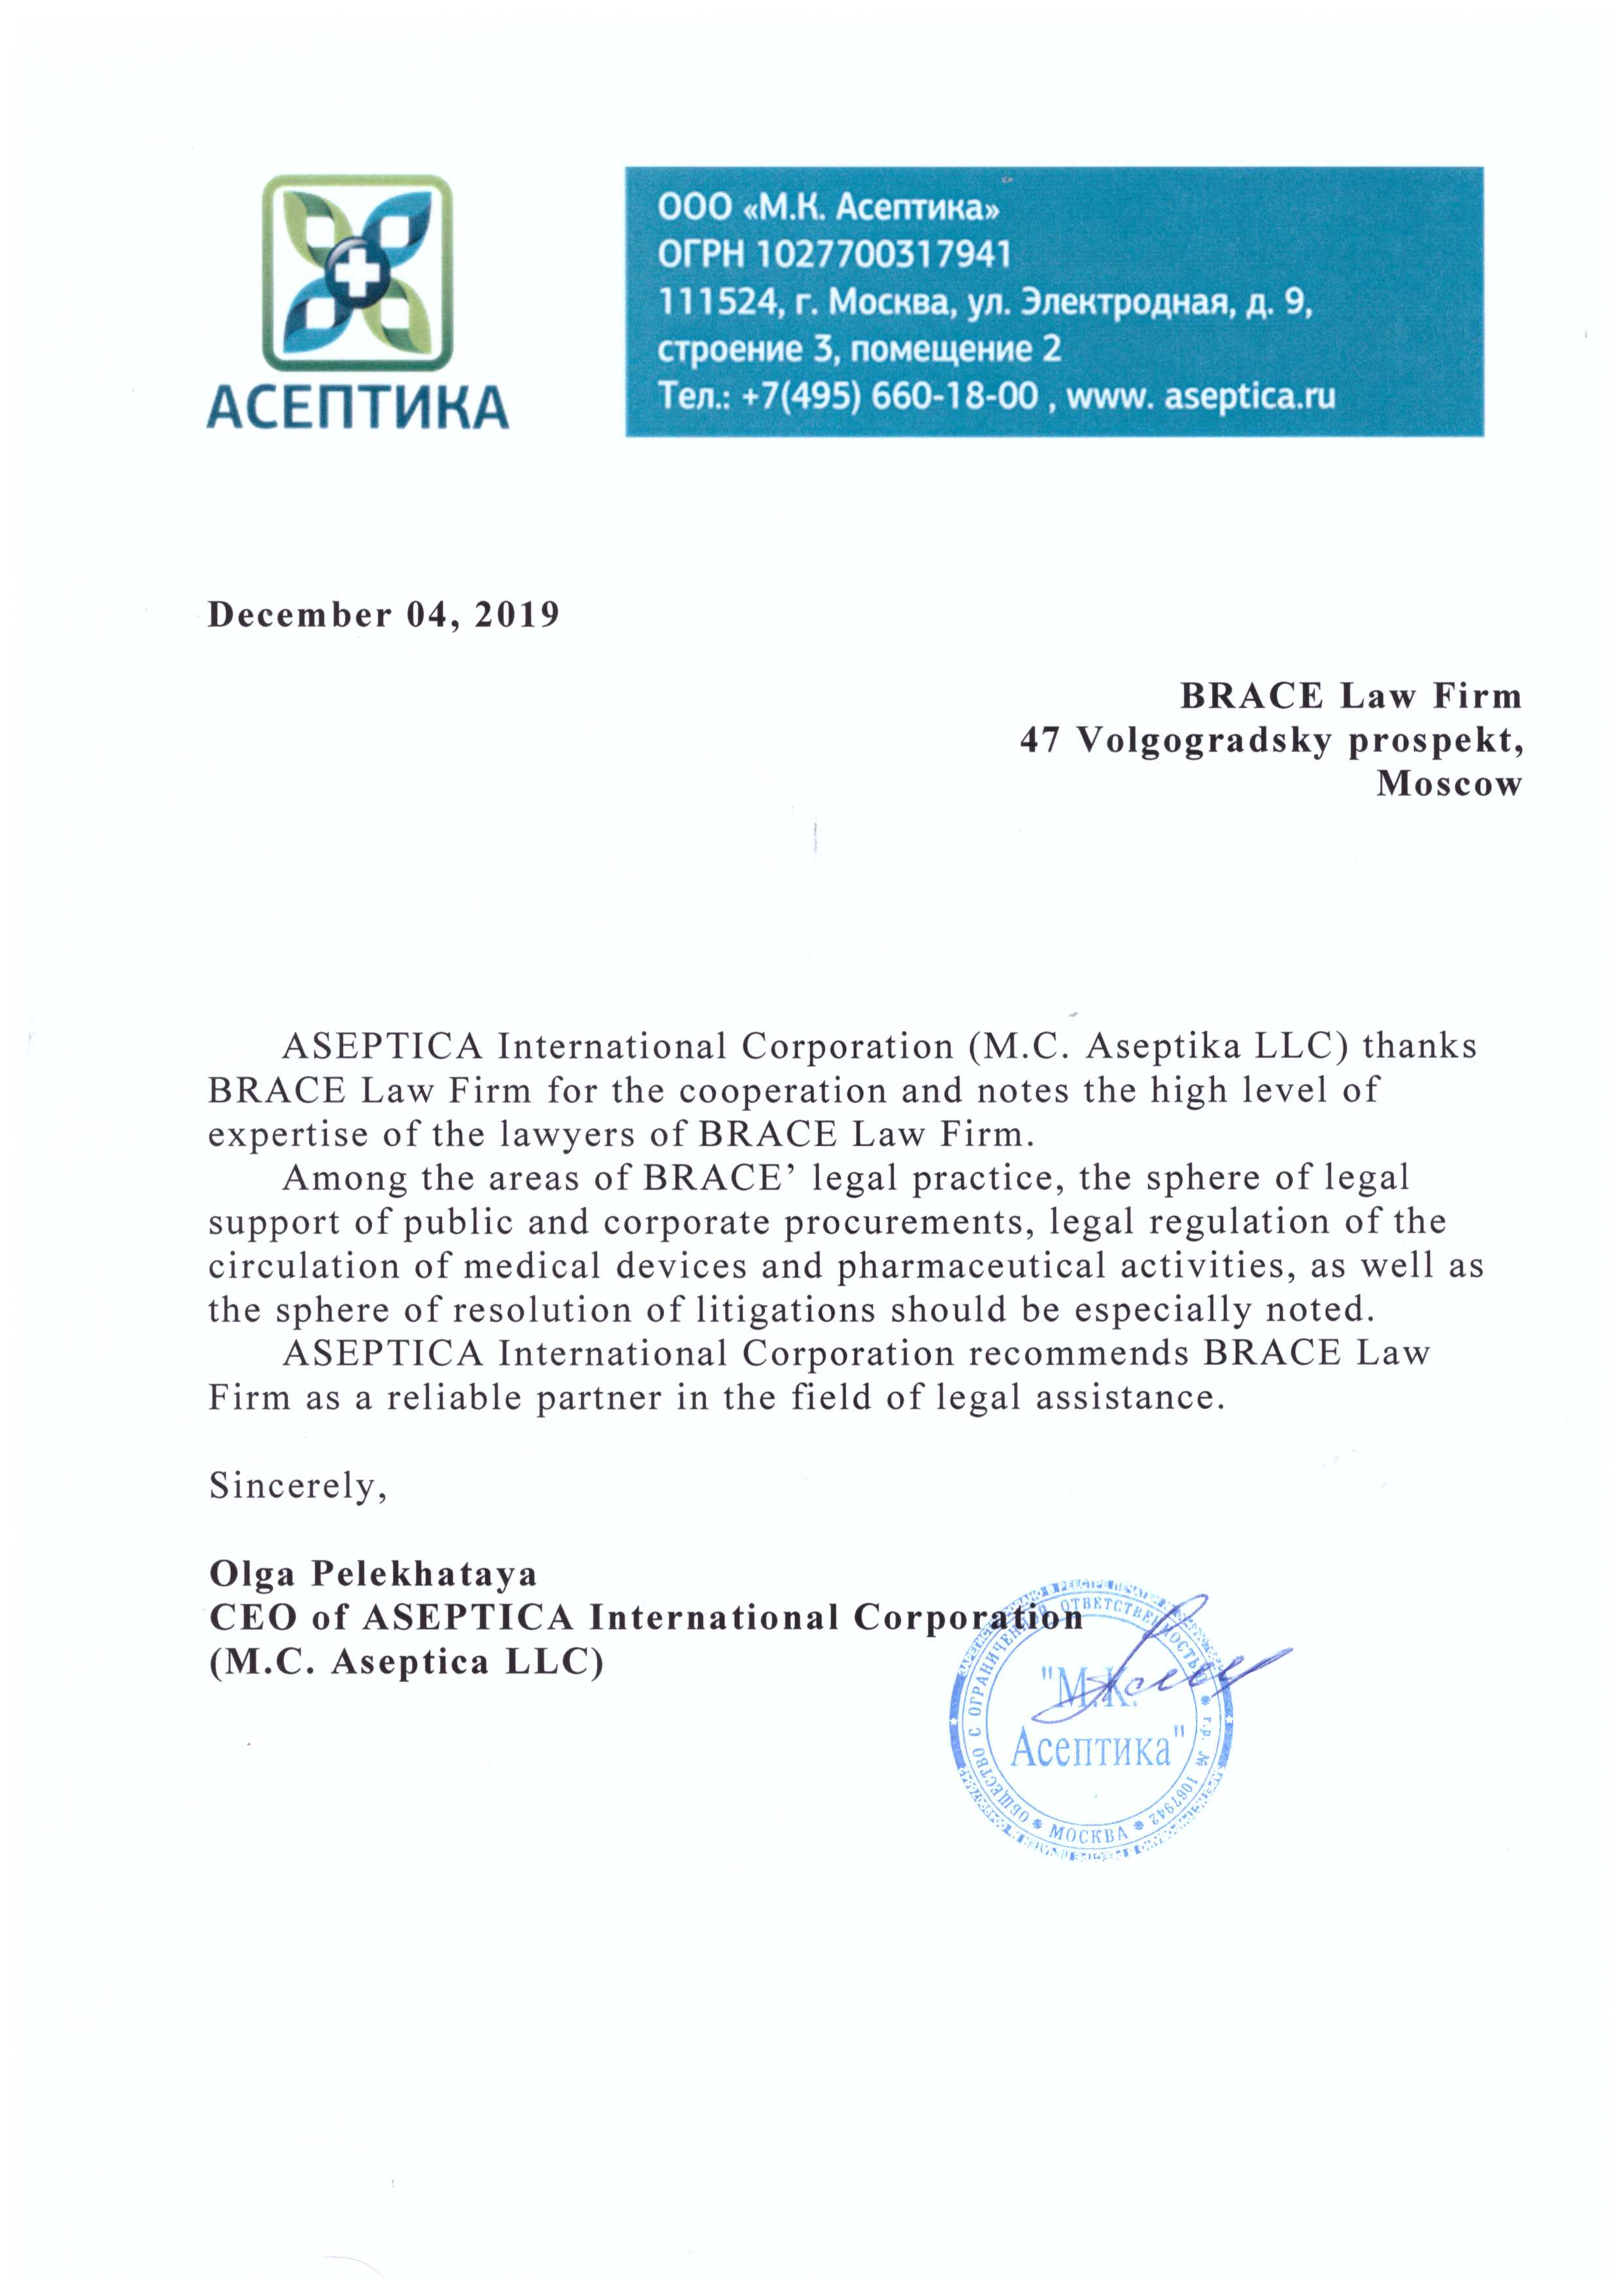 Letter of recommendation MK Aseptika BRACE Law Firm